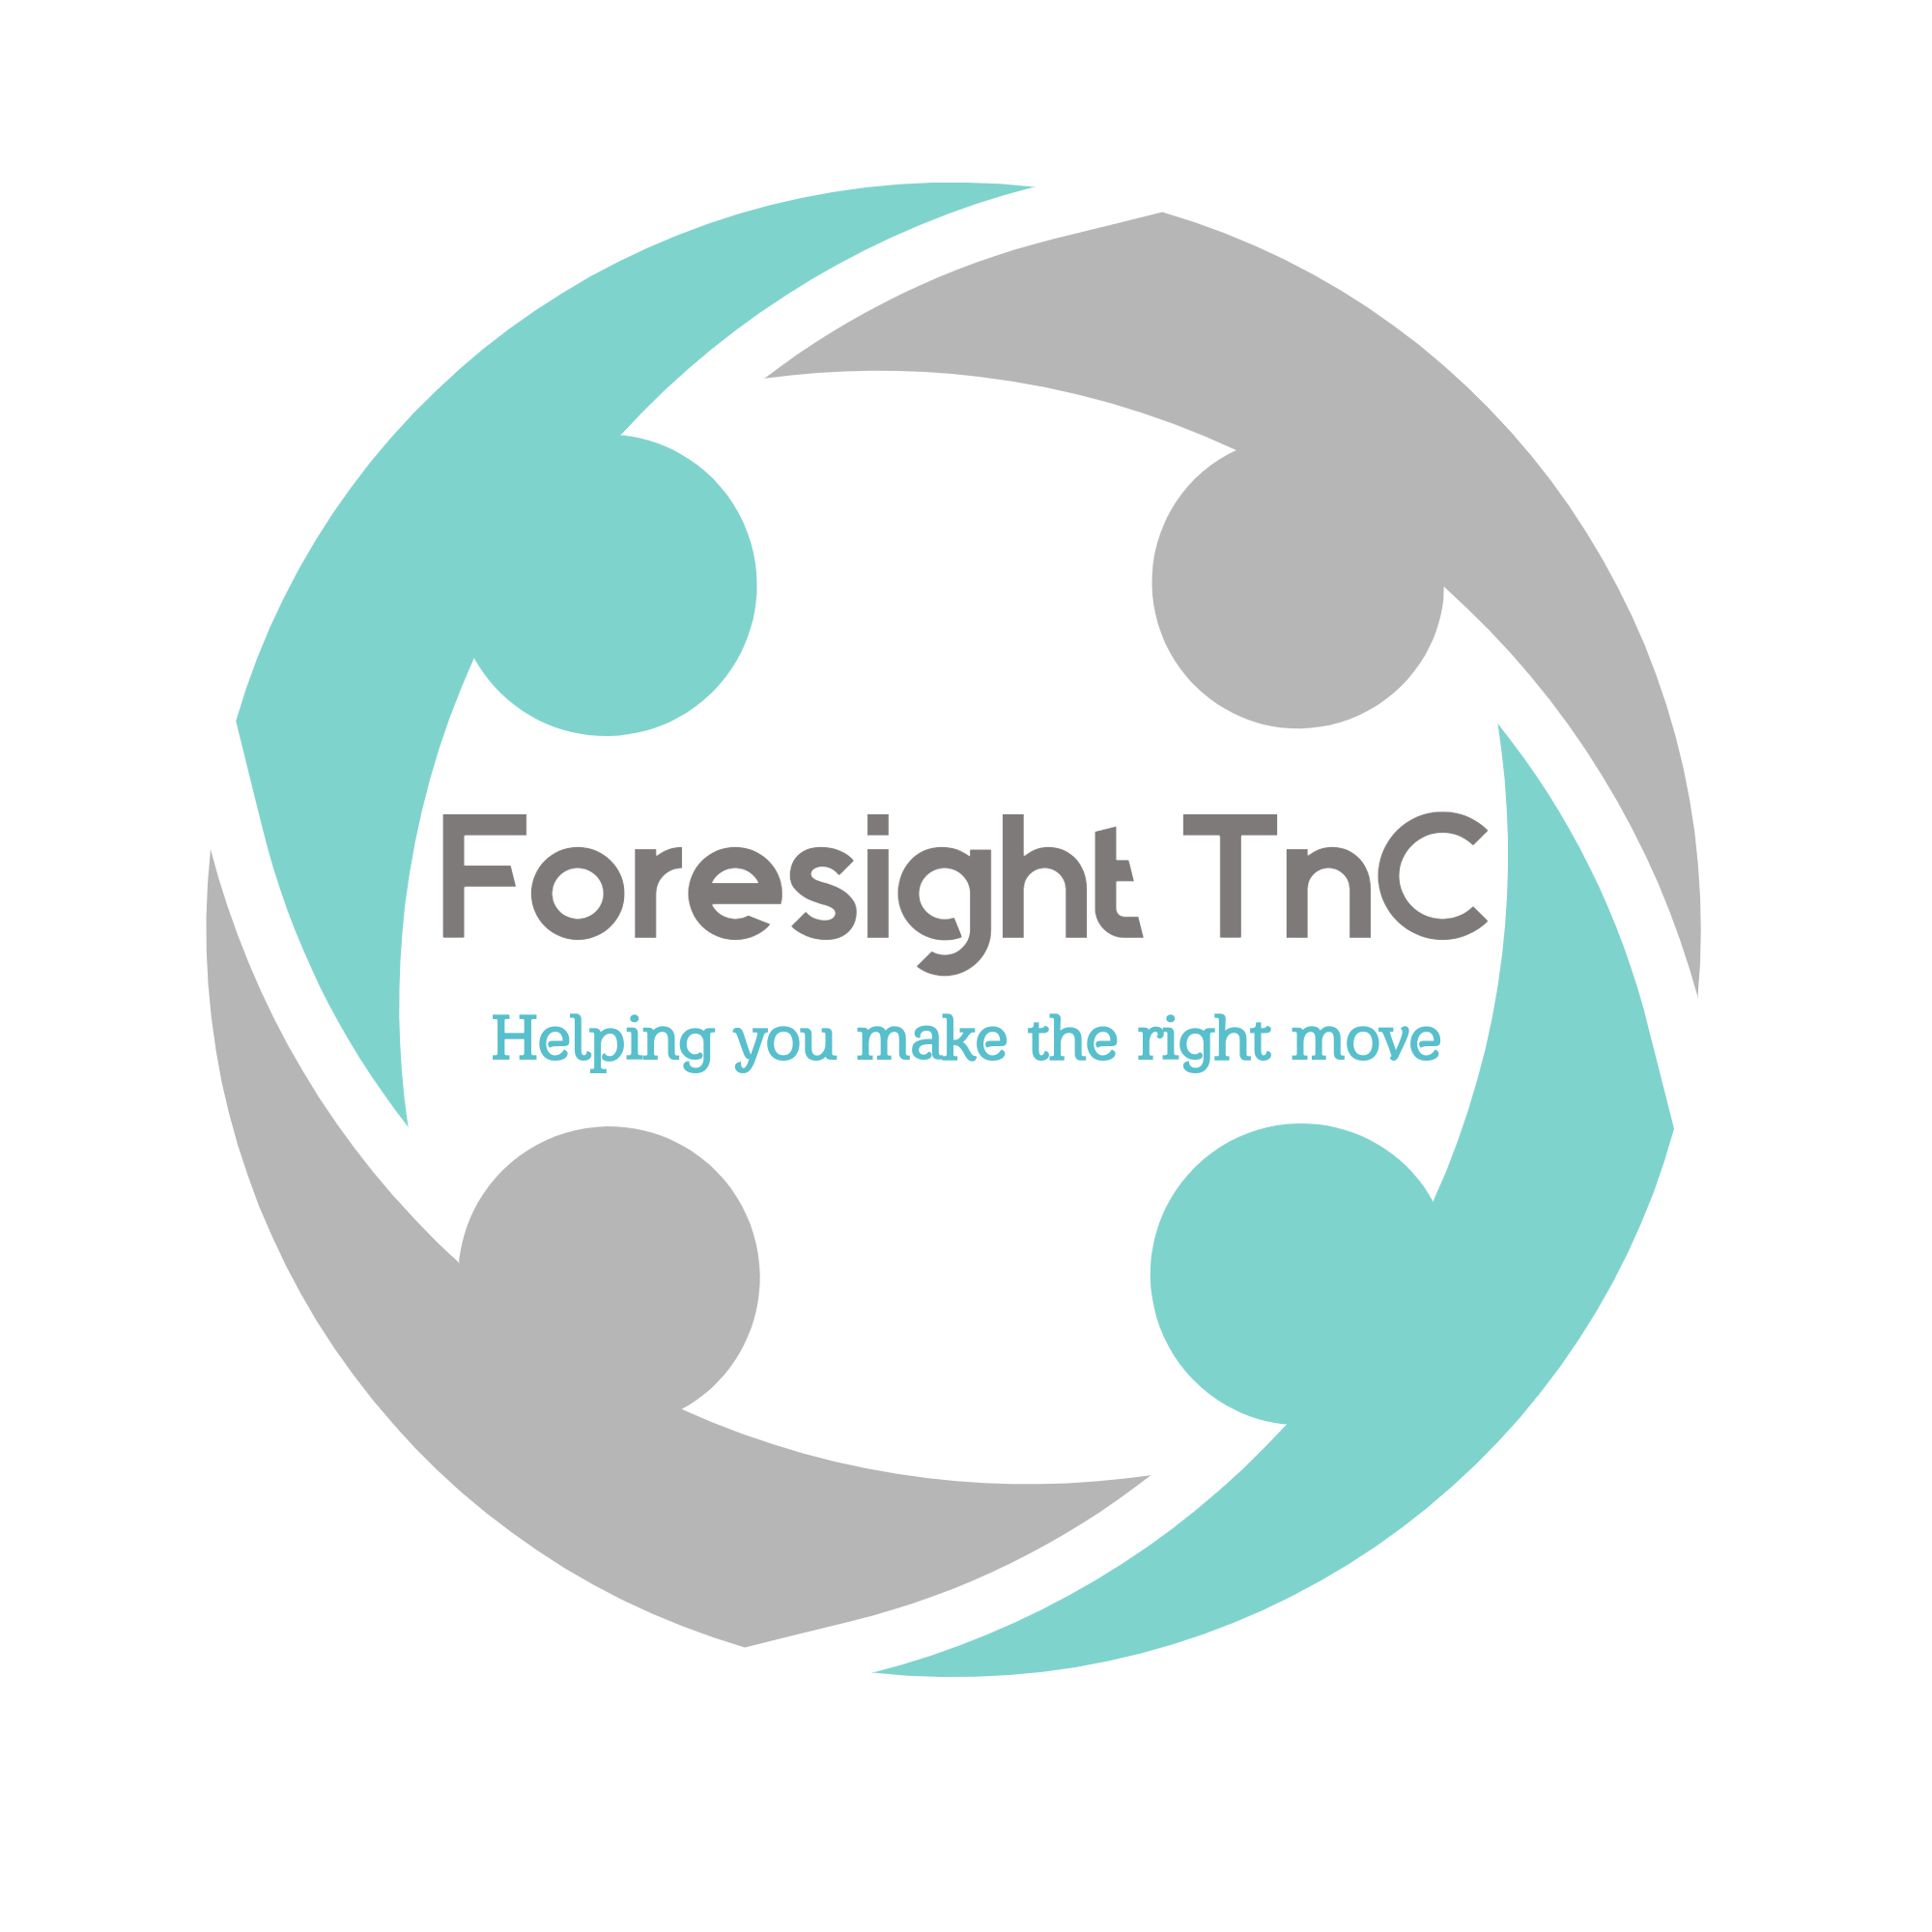 Foresight TnC Logo